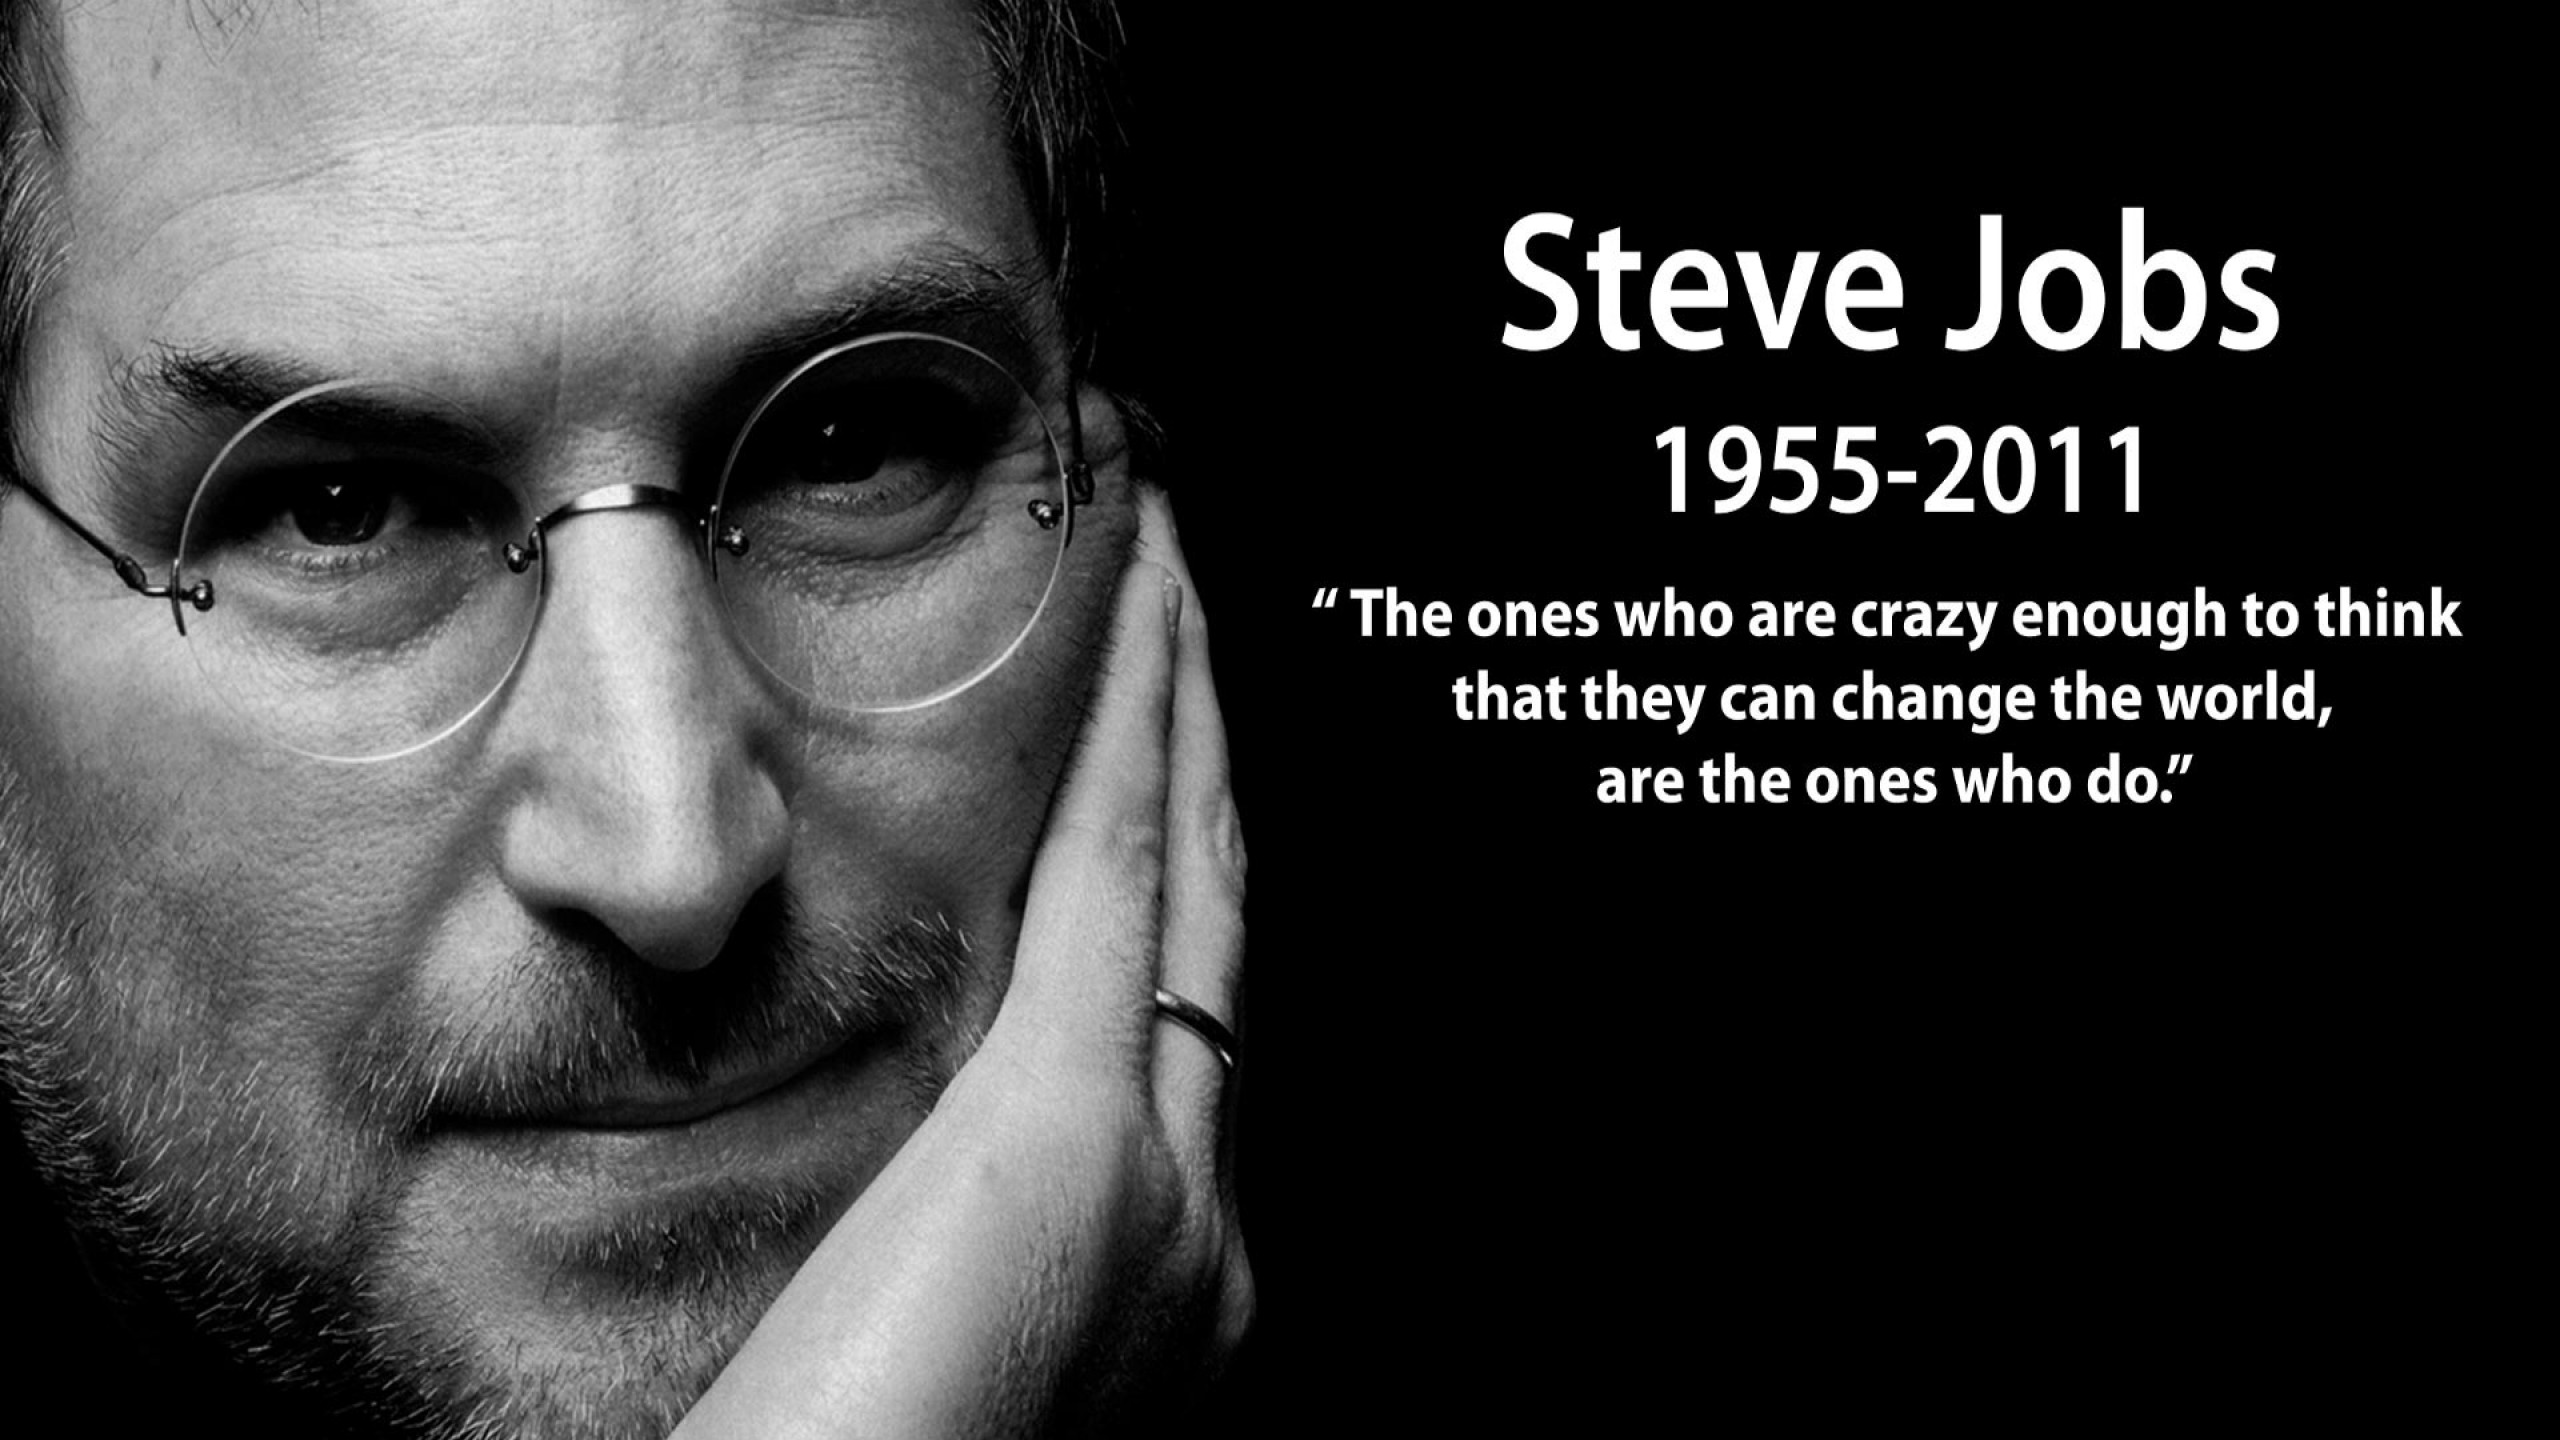 Quotes X Files Steve Jobs  Motivation Mentalist